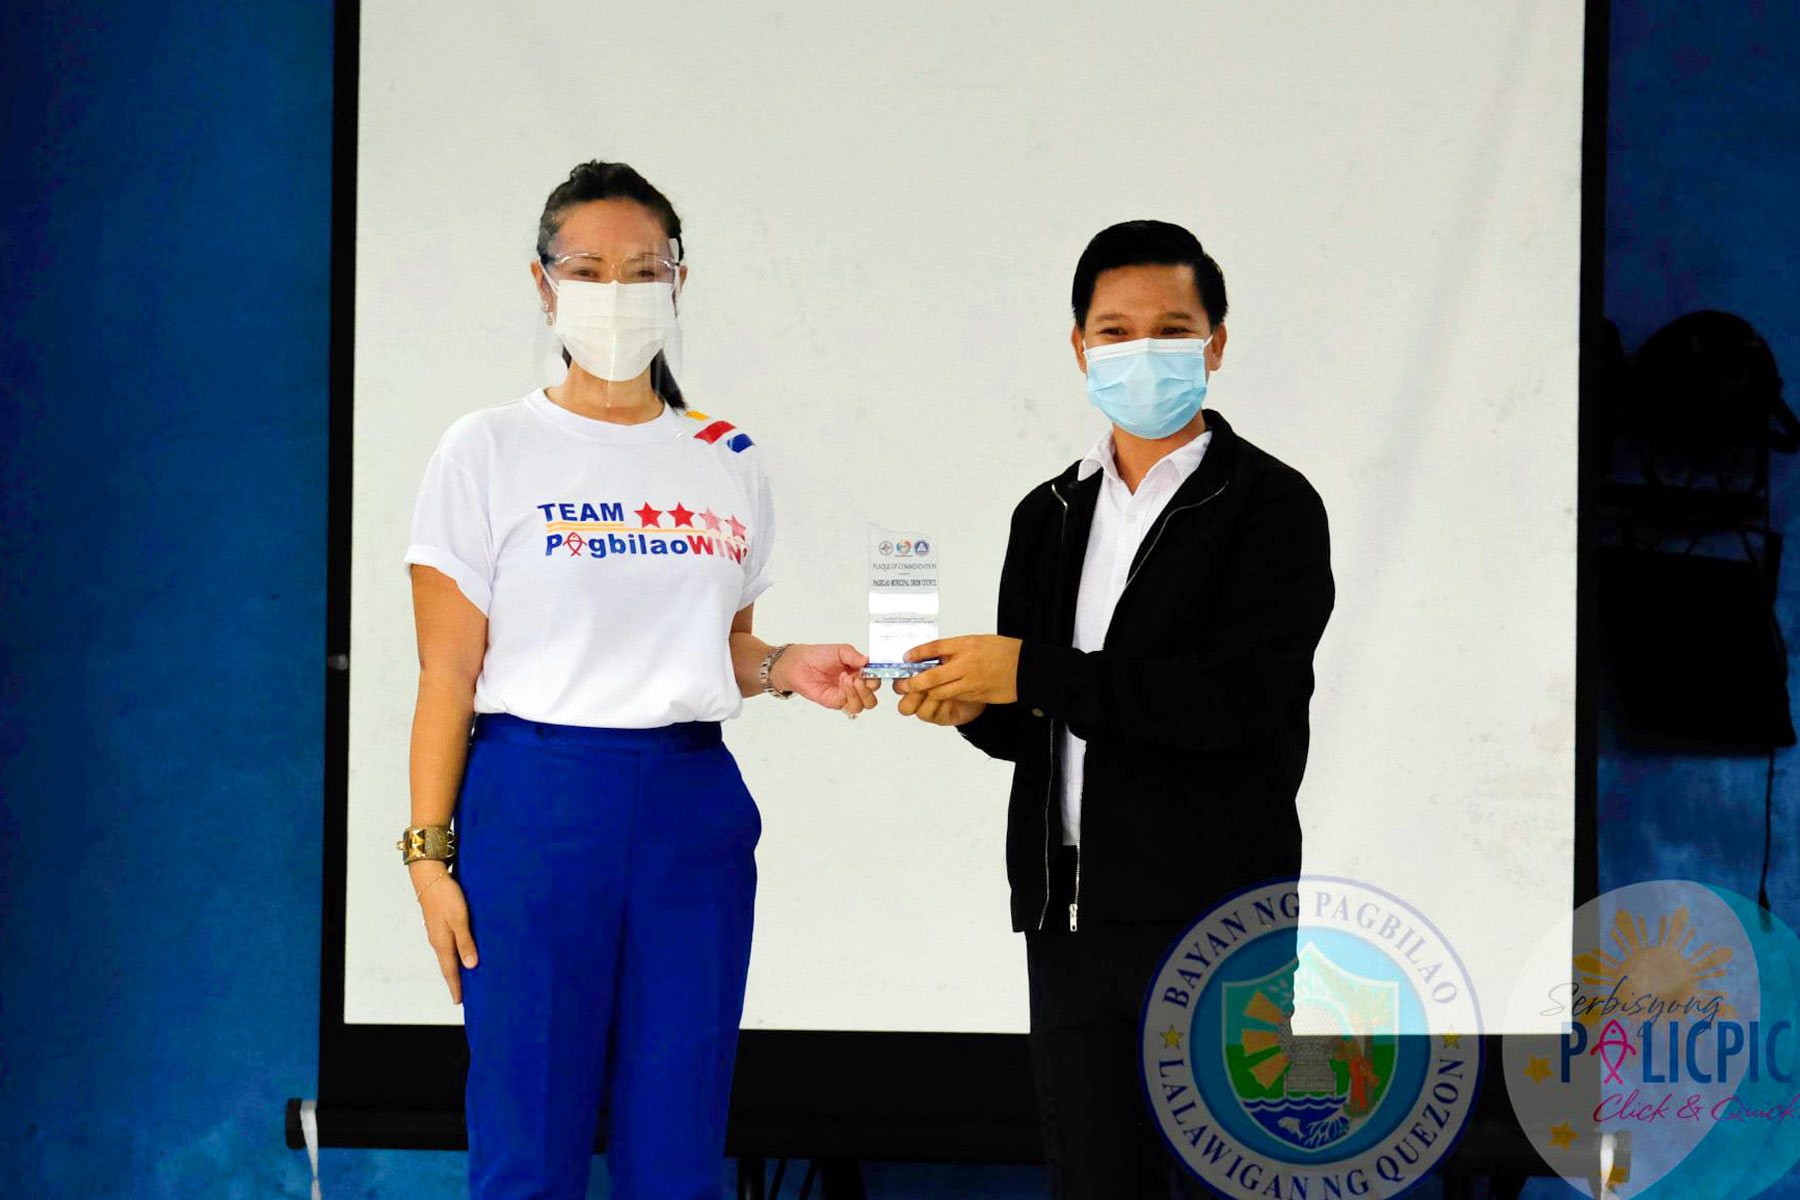 Awarding of Plaque of Commendation